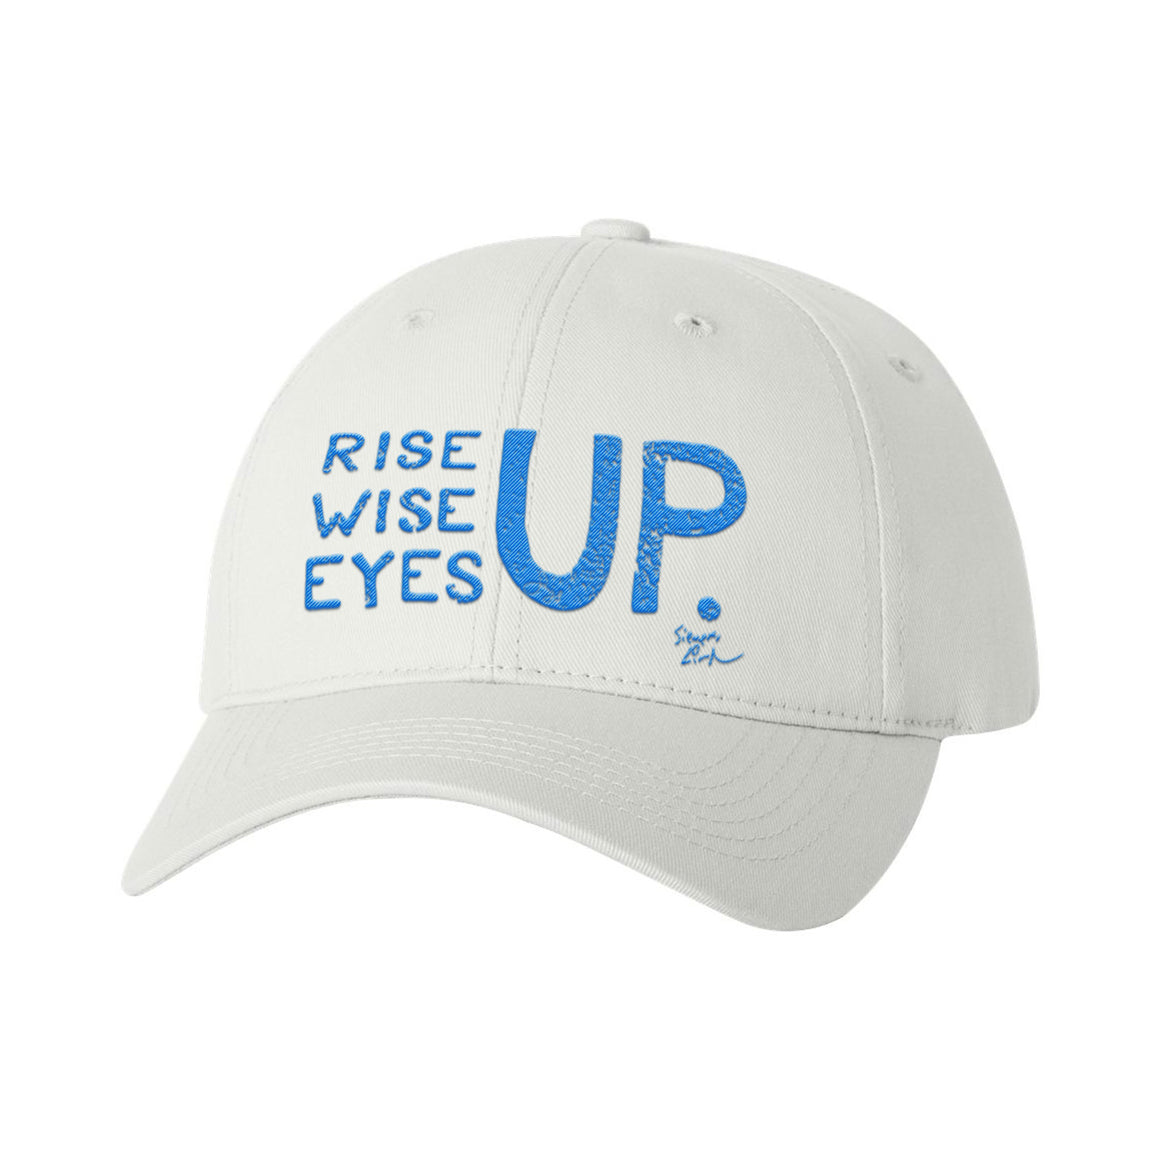 Rise Up, Wise Up, Eyes Up - Baseball Cap (White)